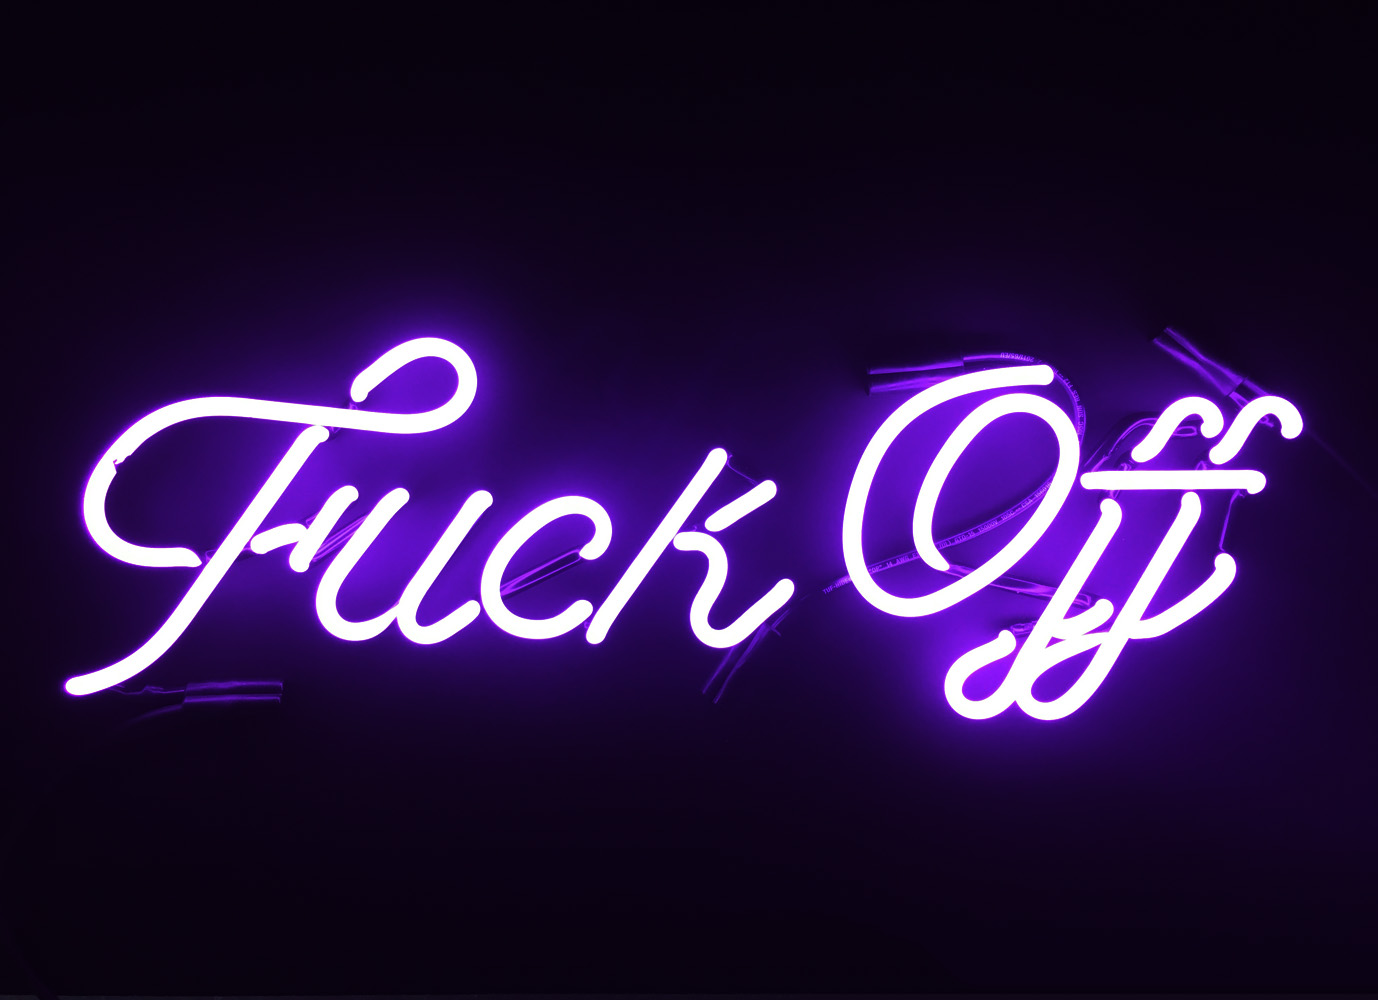 Indira-Cesarine-FUCK-OFF-violet-neon-2-THE-UNTITLED-SPACE-UPRISE-ANGRY-WOMEN-EXHIBIT-lowres-copy-2.jpg